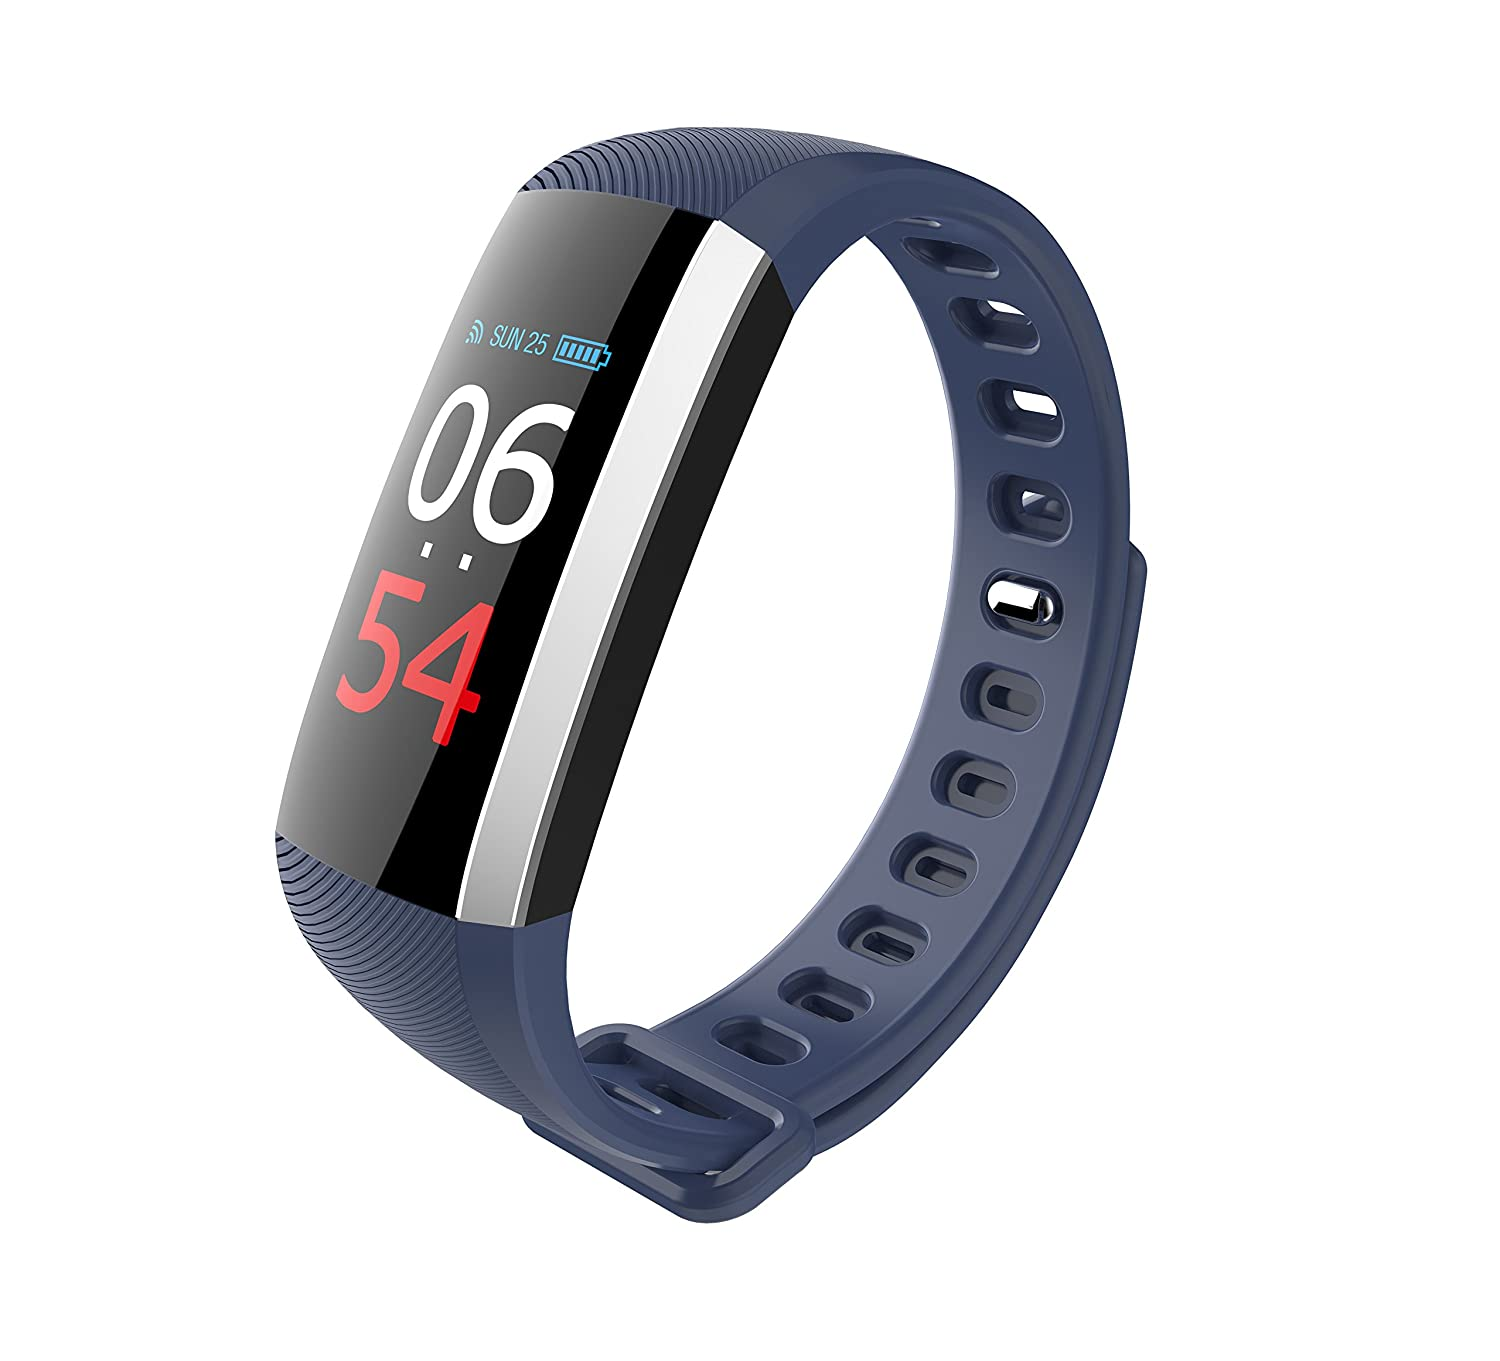 TU2blueee Fitness Tracker Watch, Collasaro blueeetooth Sports Fitness Watch Waterproof with Heart Rate and Blood Pressure Monitor, Pedometer, Smart Watch for iOS iPhone & Android Smartphone…